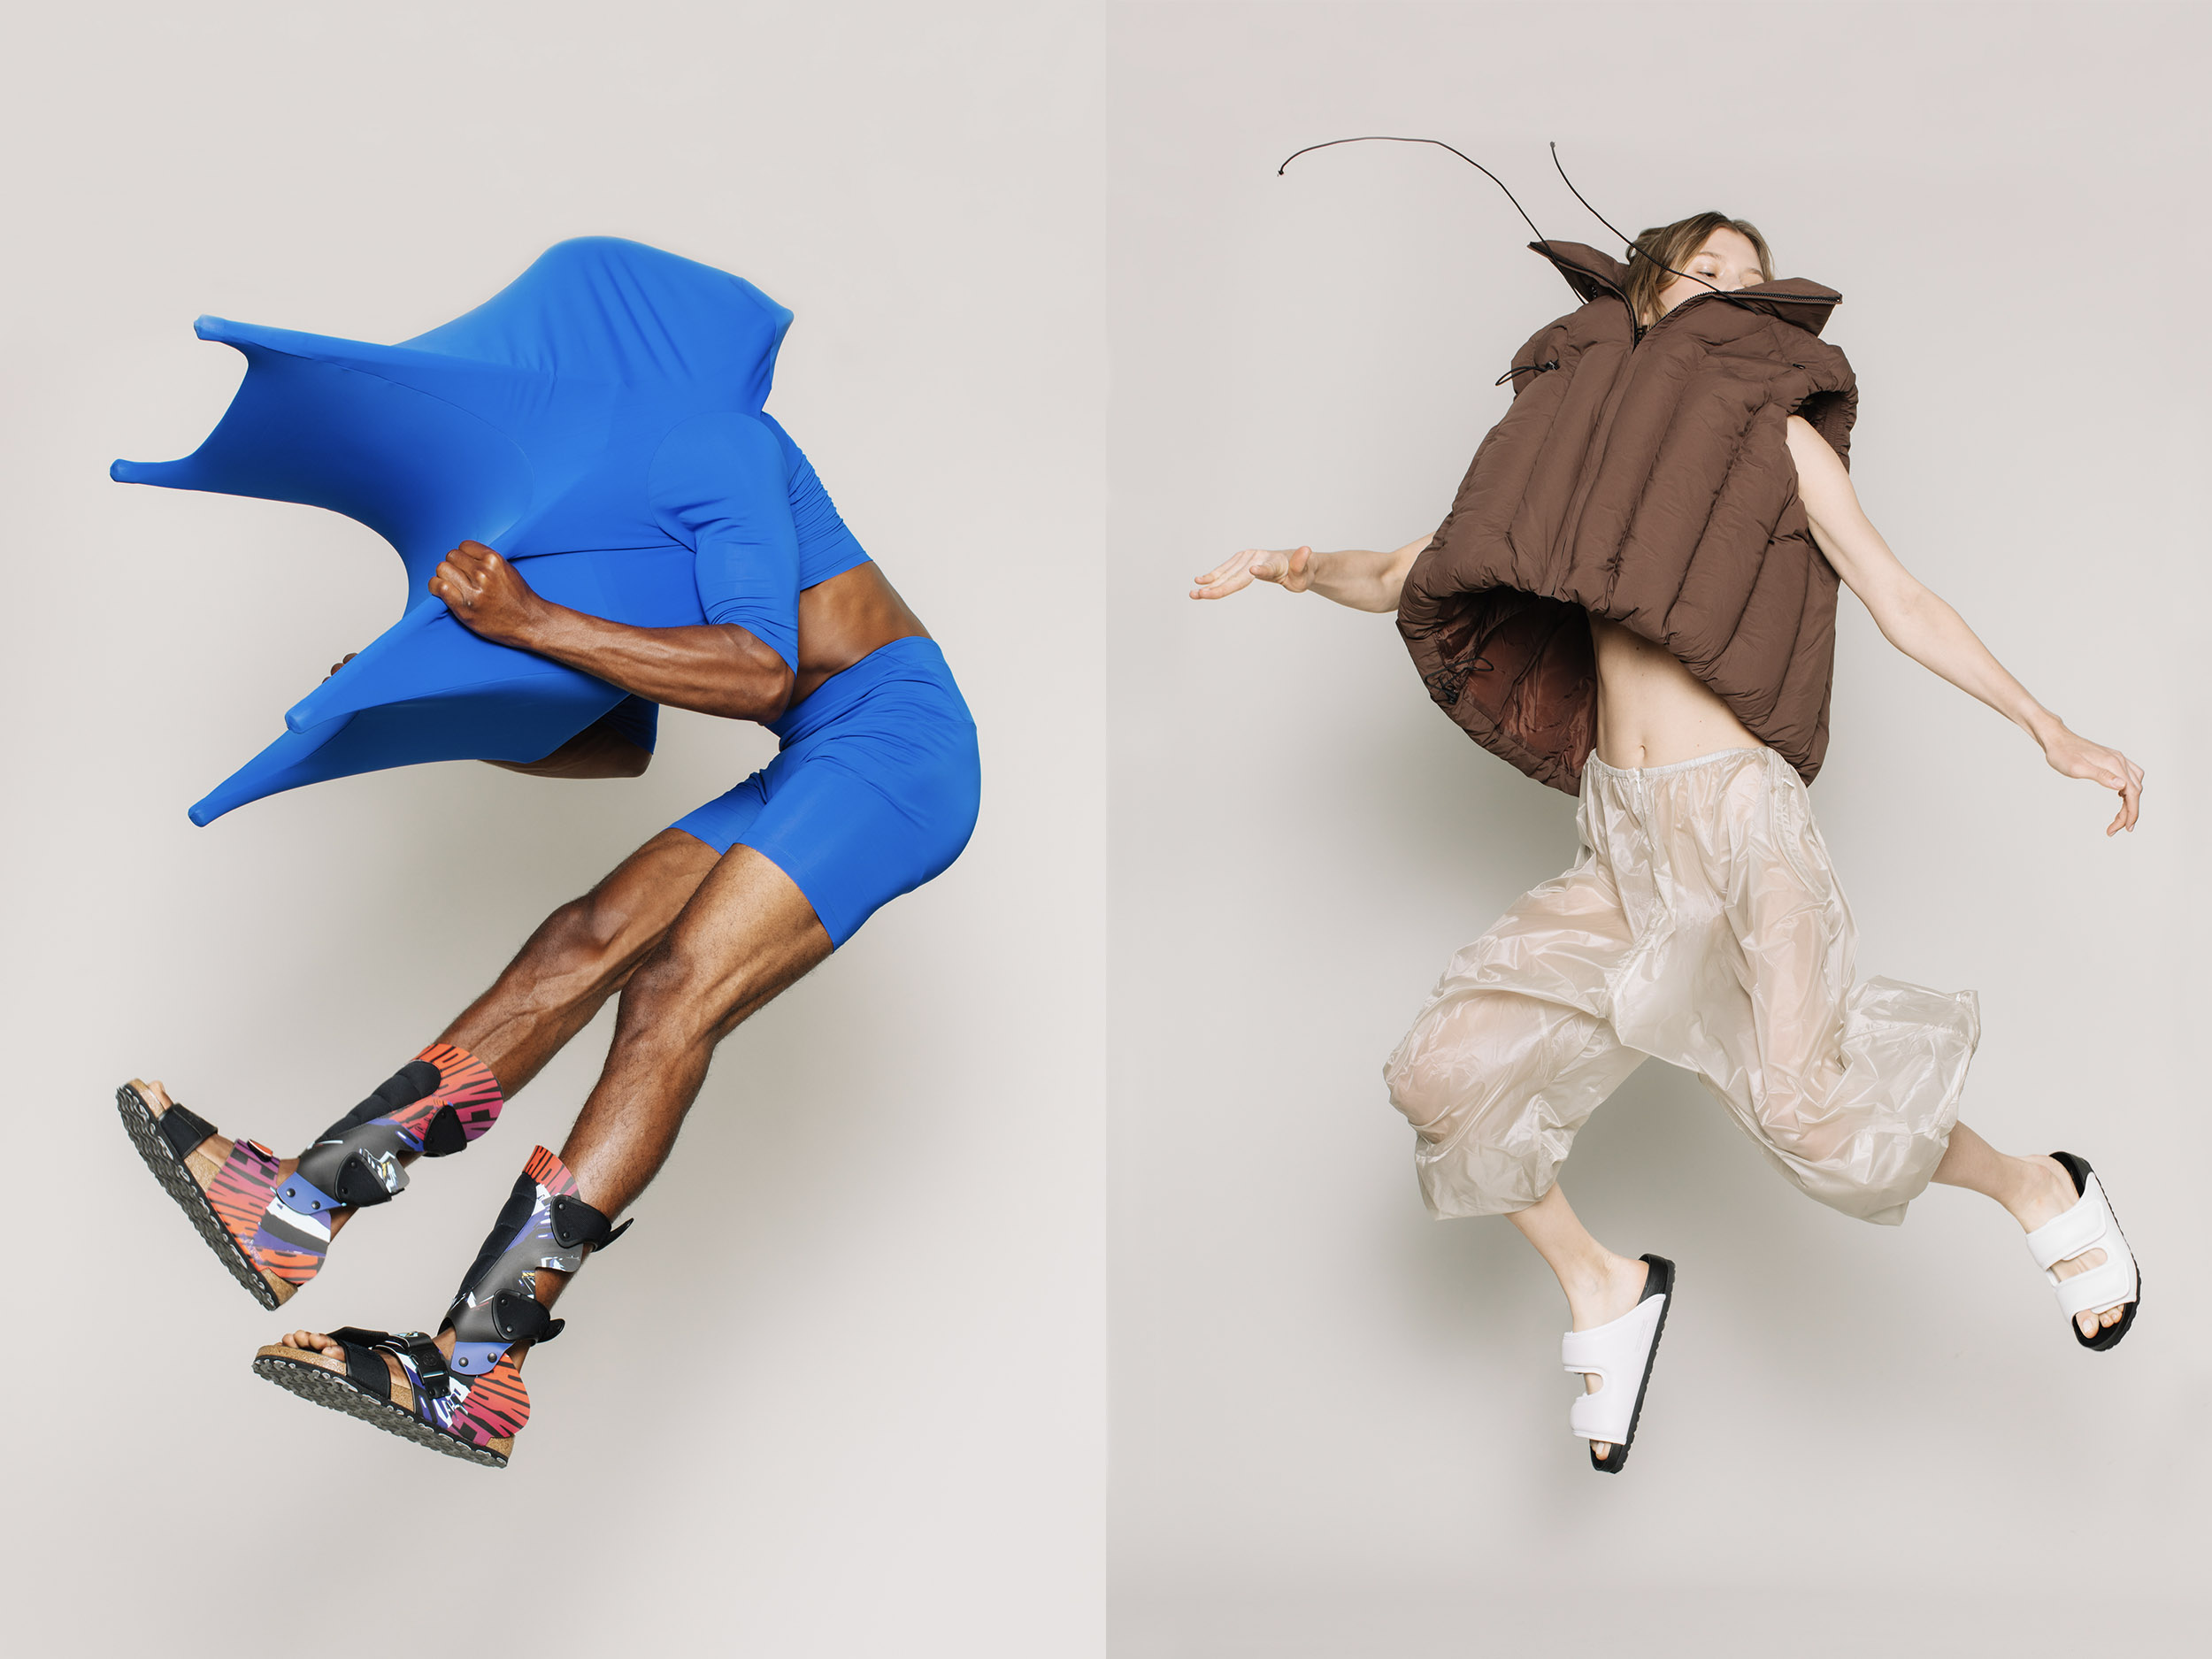 Birkenstock's Central Saint Martins collaboration highlights four emerging designers